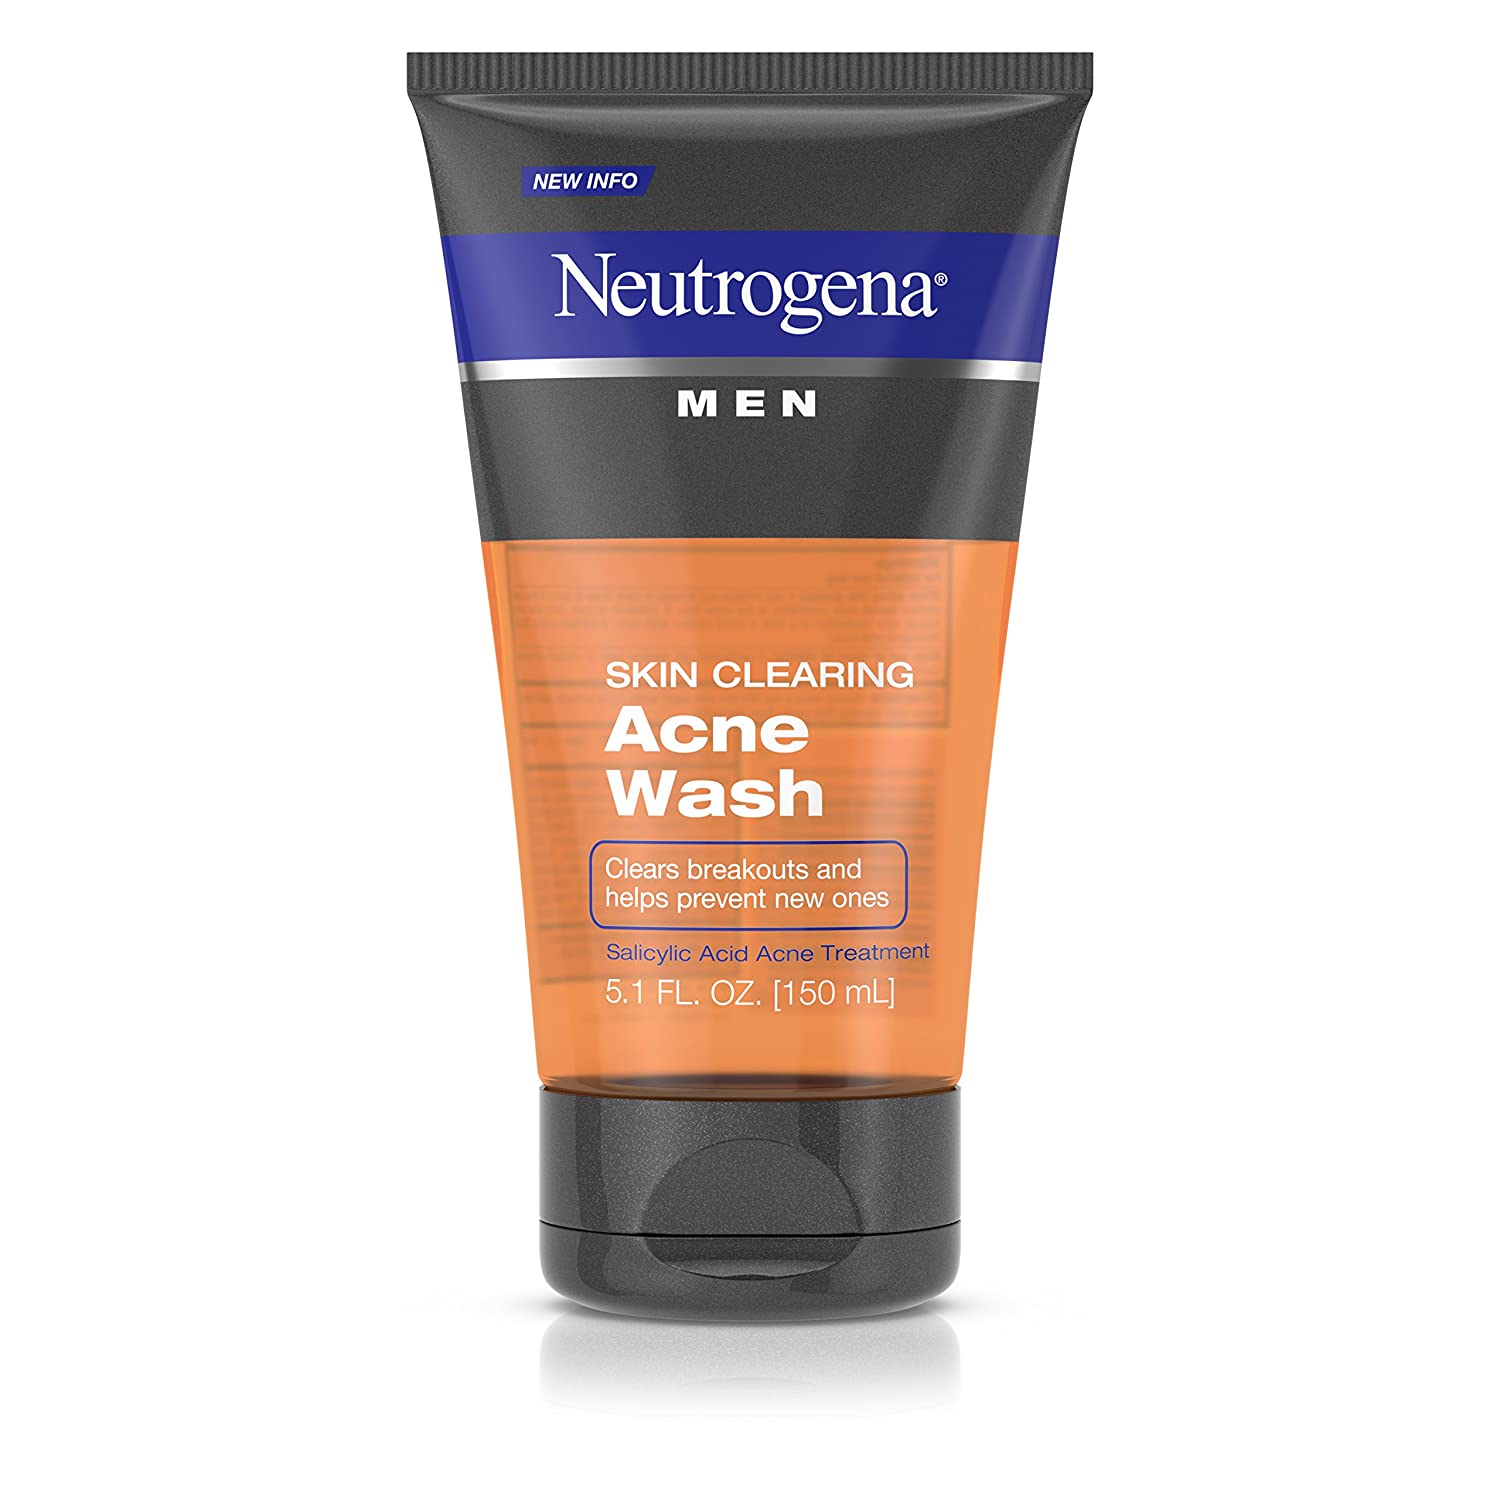 Salicylic Acid Acne - recipes for use and reviews